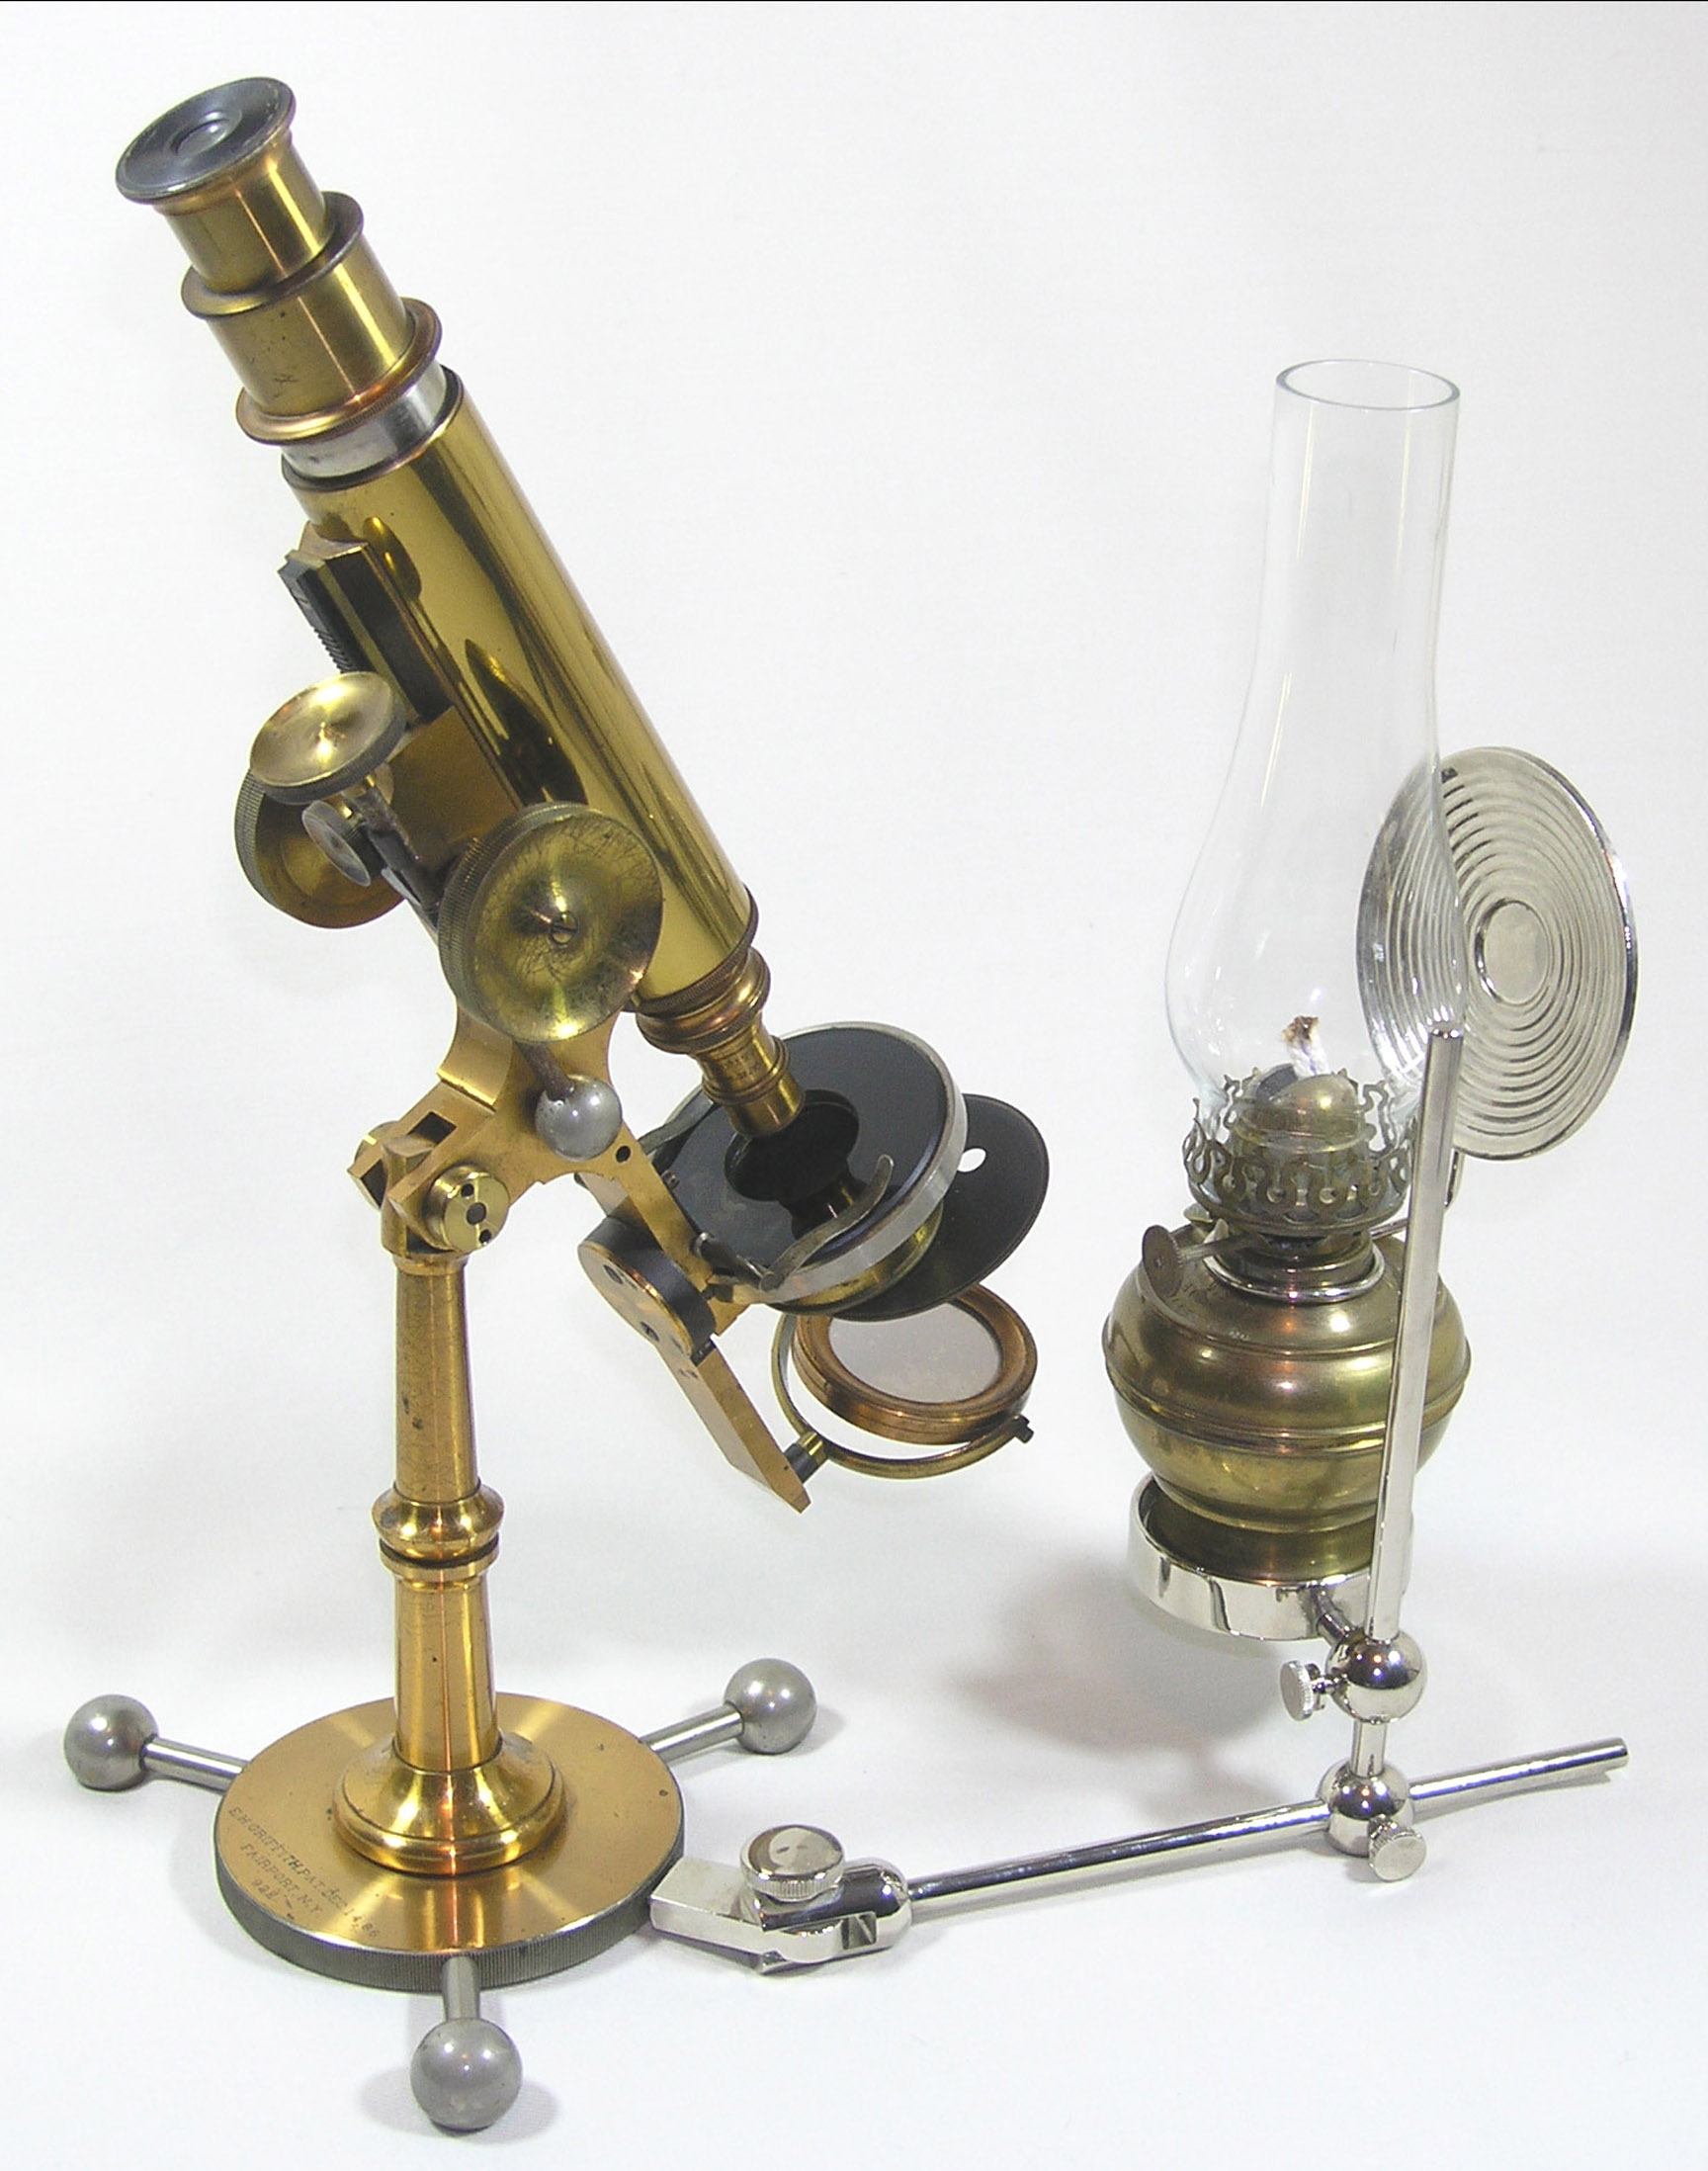 Improved Griffith Club microscope with original lamp